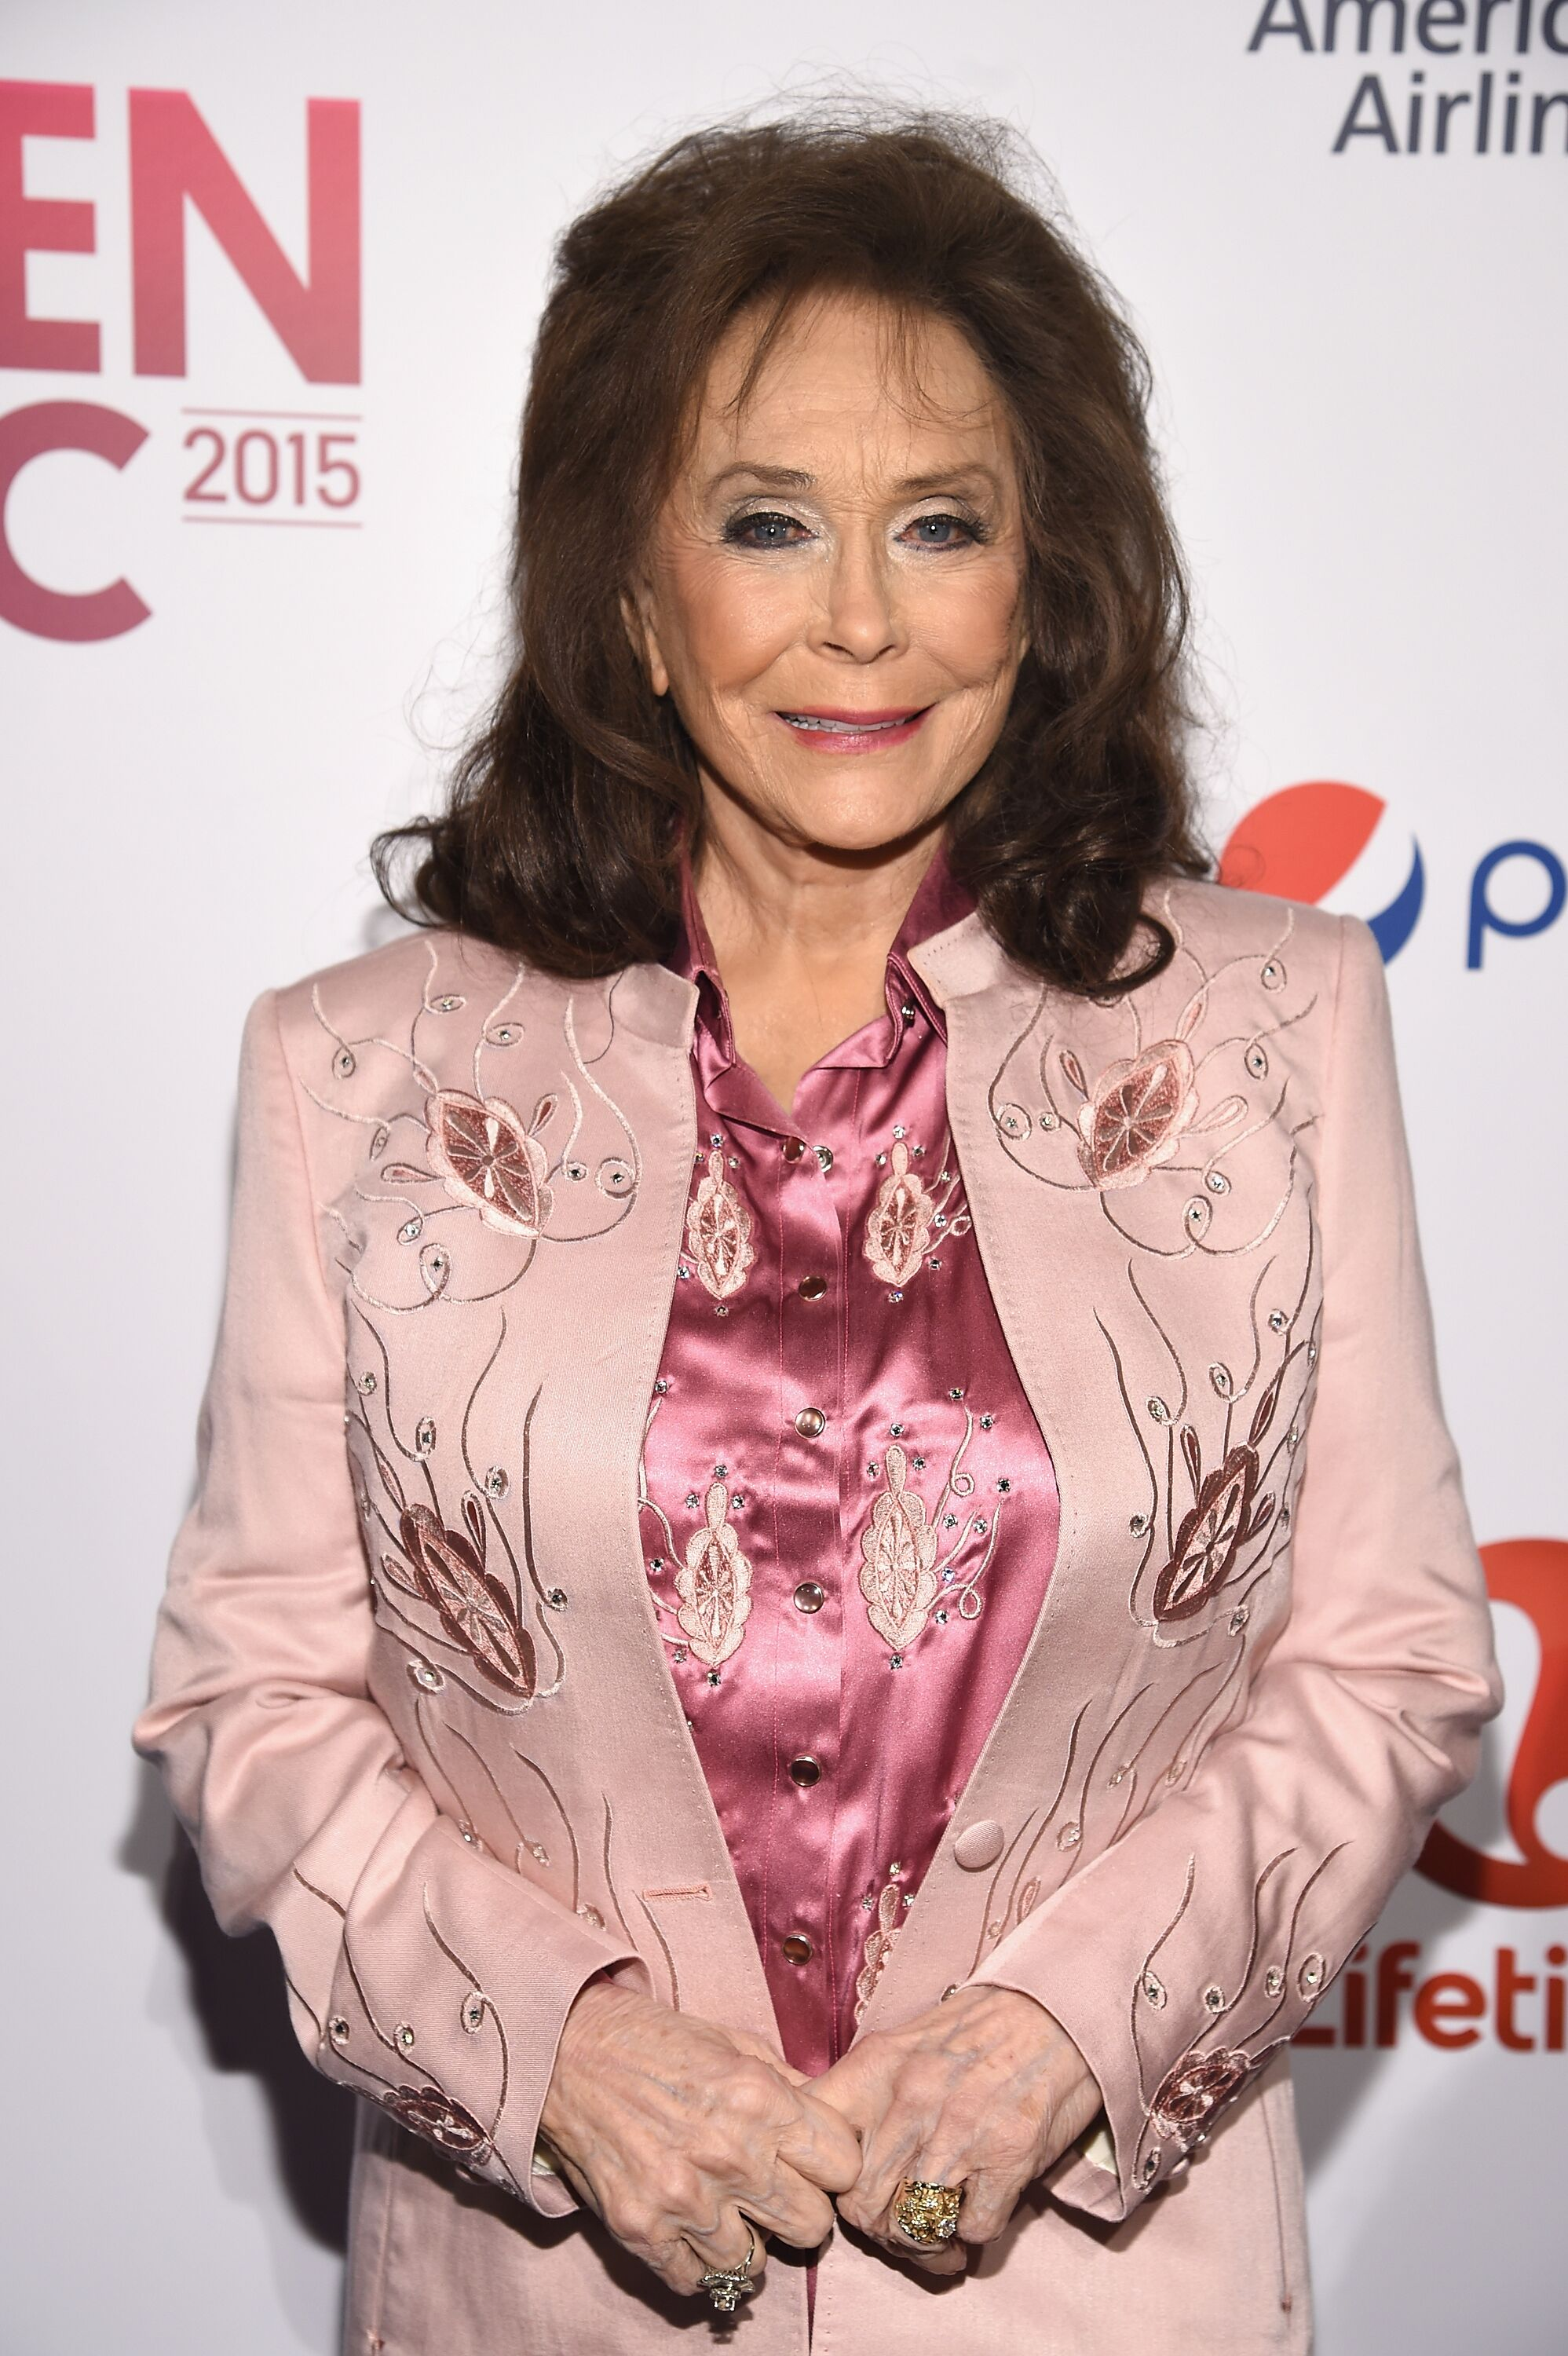 Loretta Lynn at Cipriani 42nd Street on December 11, 2015 in New York City | Photo: Getty Images